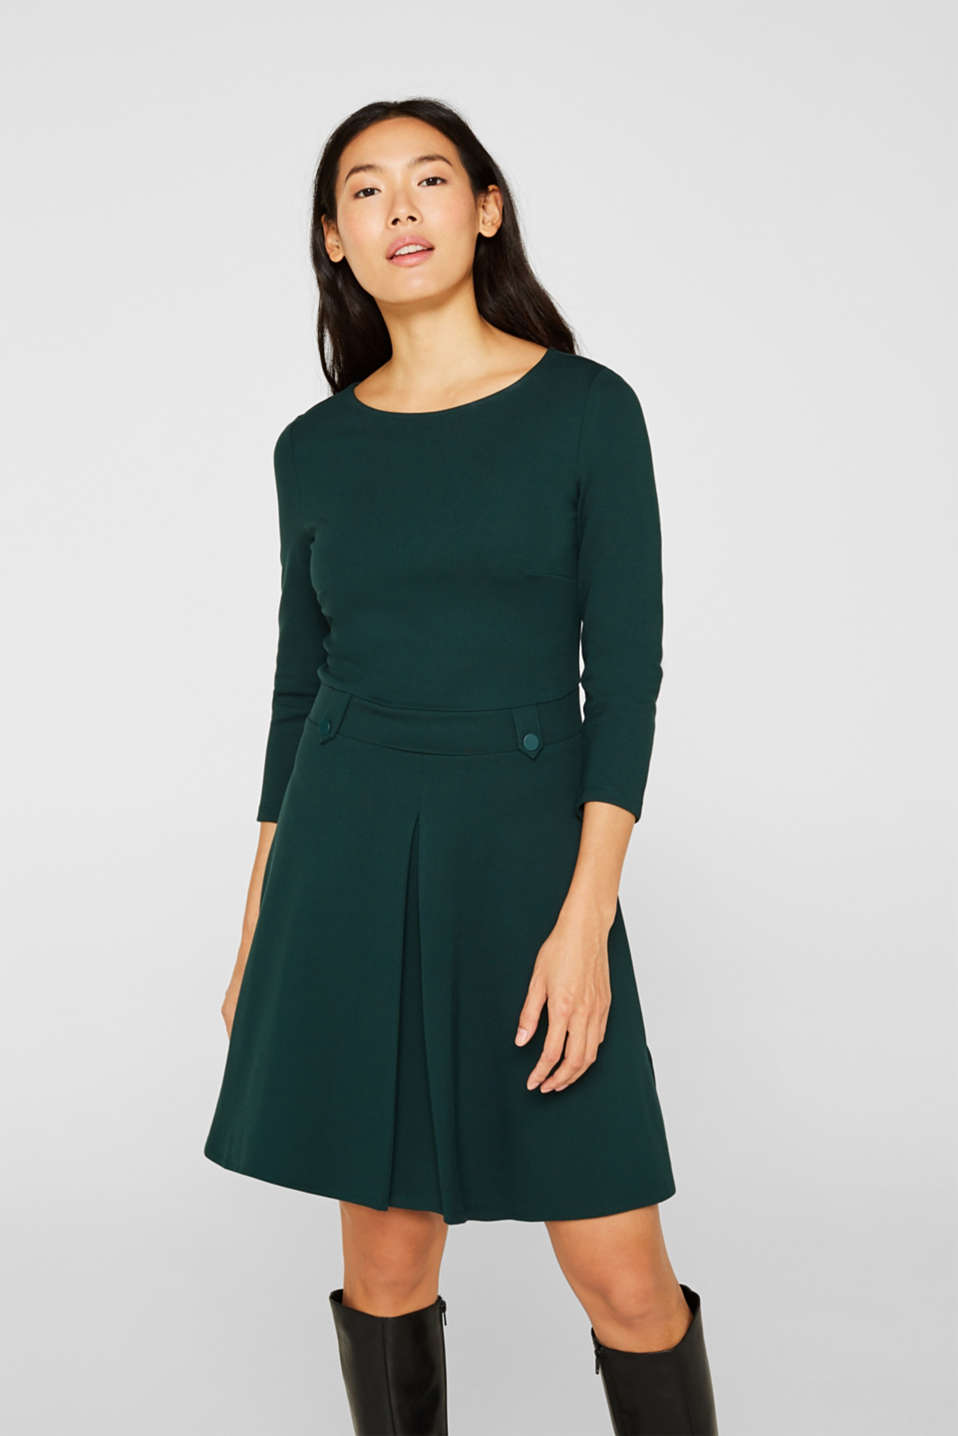 Flared dress made of stretch jersey, DARK TEAL GREEN, detail image number 0